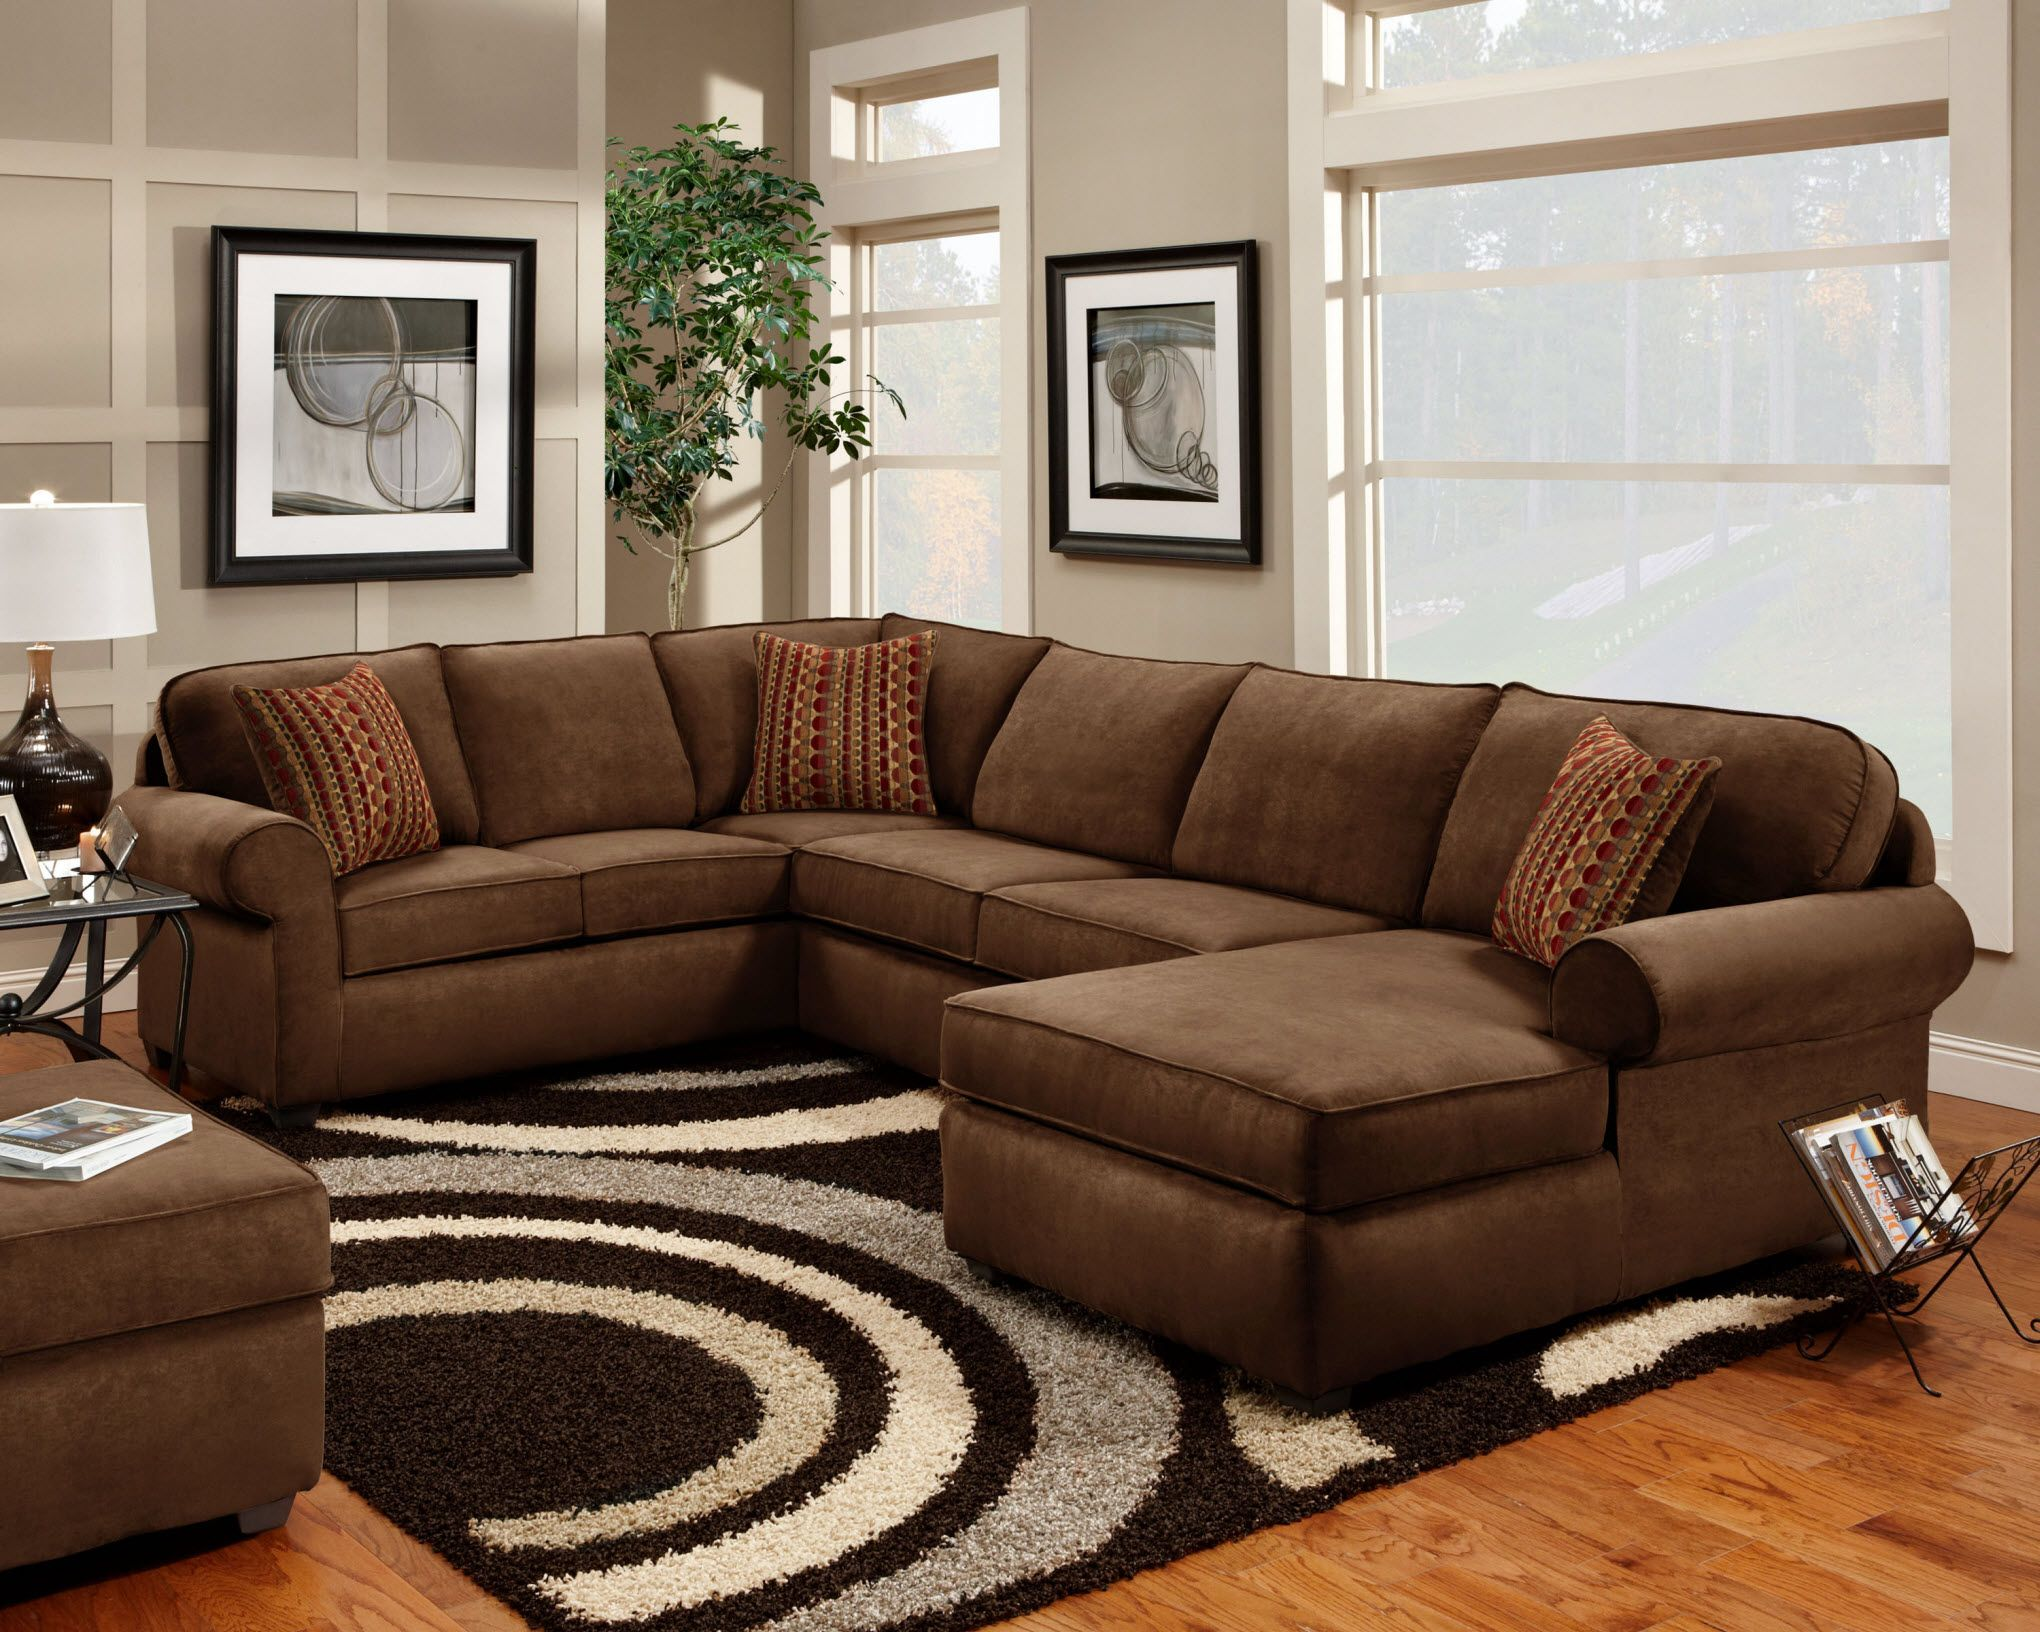 7070 Washington Flat Suede Chocolate Sectional